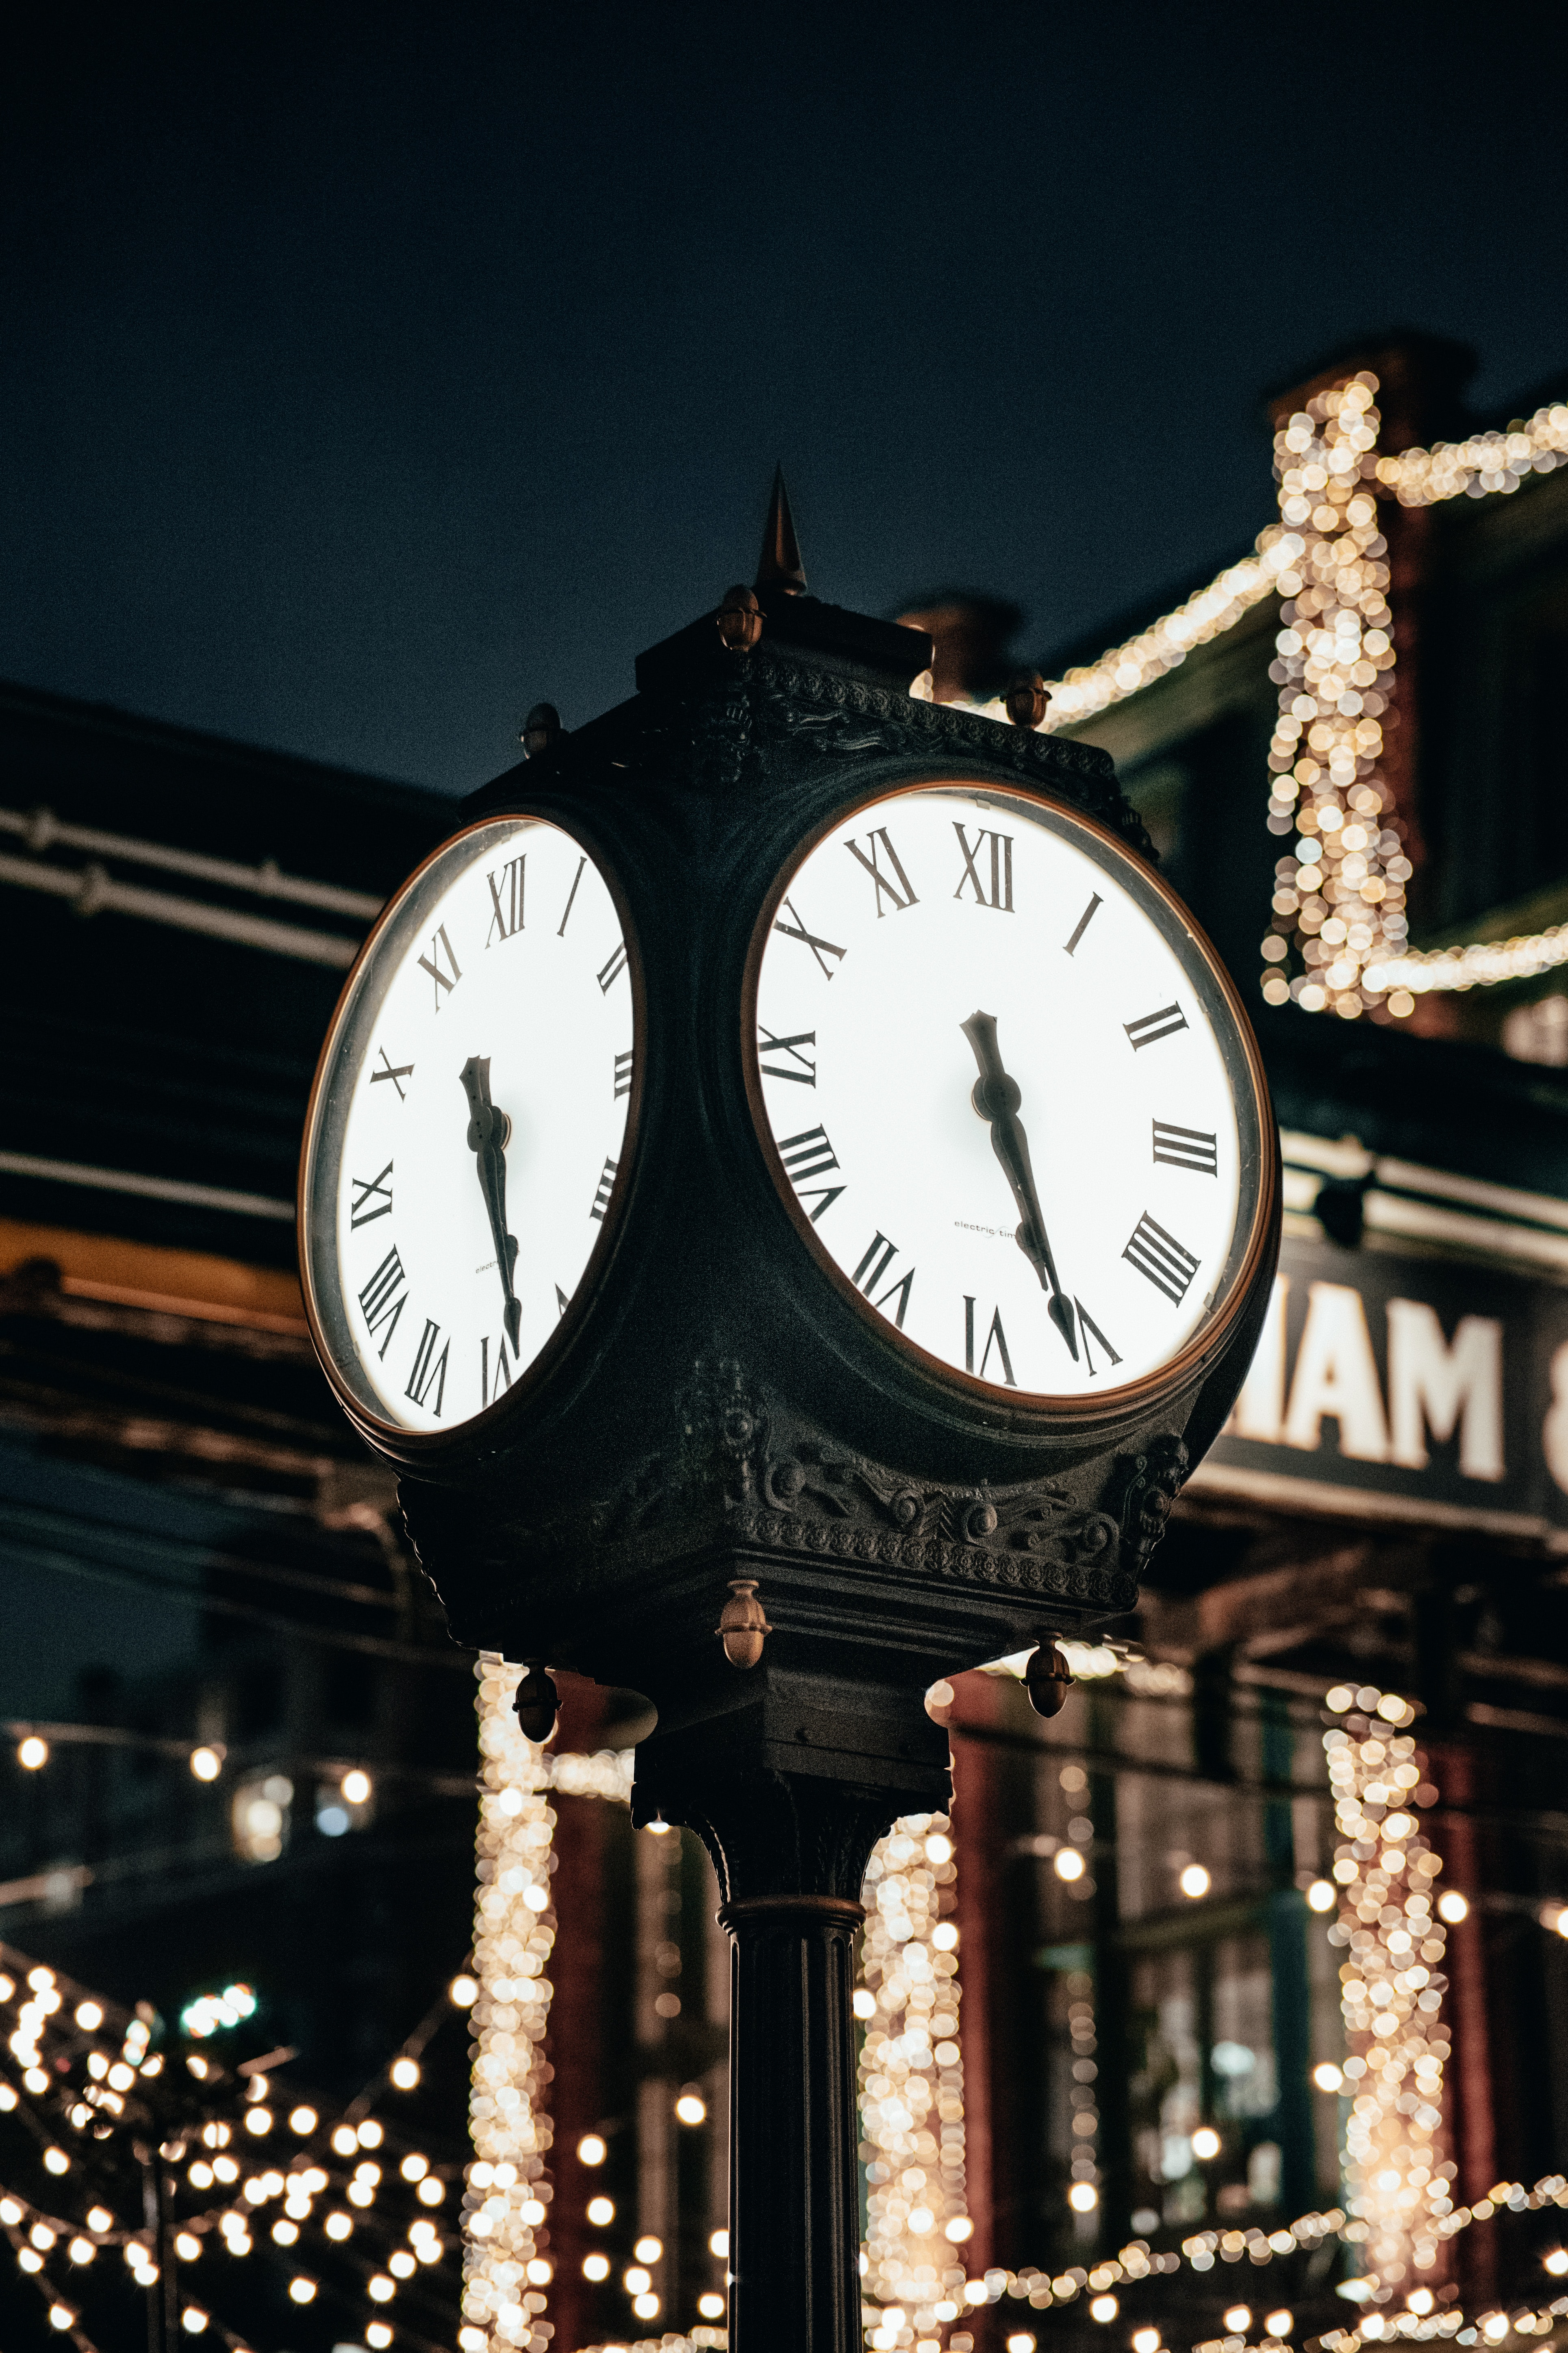 136527 download wallpaper Miscellaneous, Clock, City, Miscellanea, Backlight, Illumination, Street, Clock Face, Dial screensavers and pictures for free